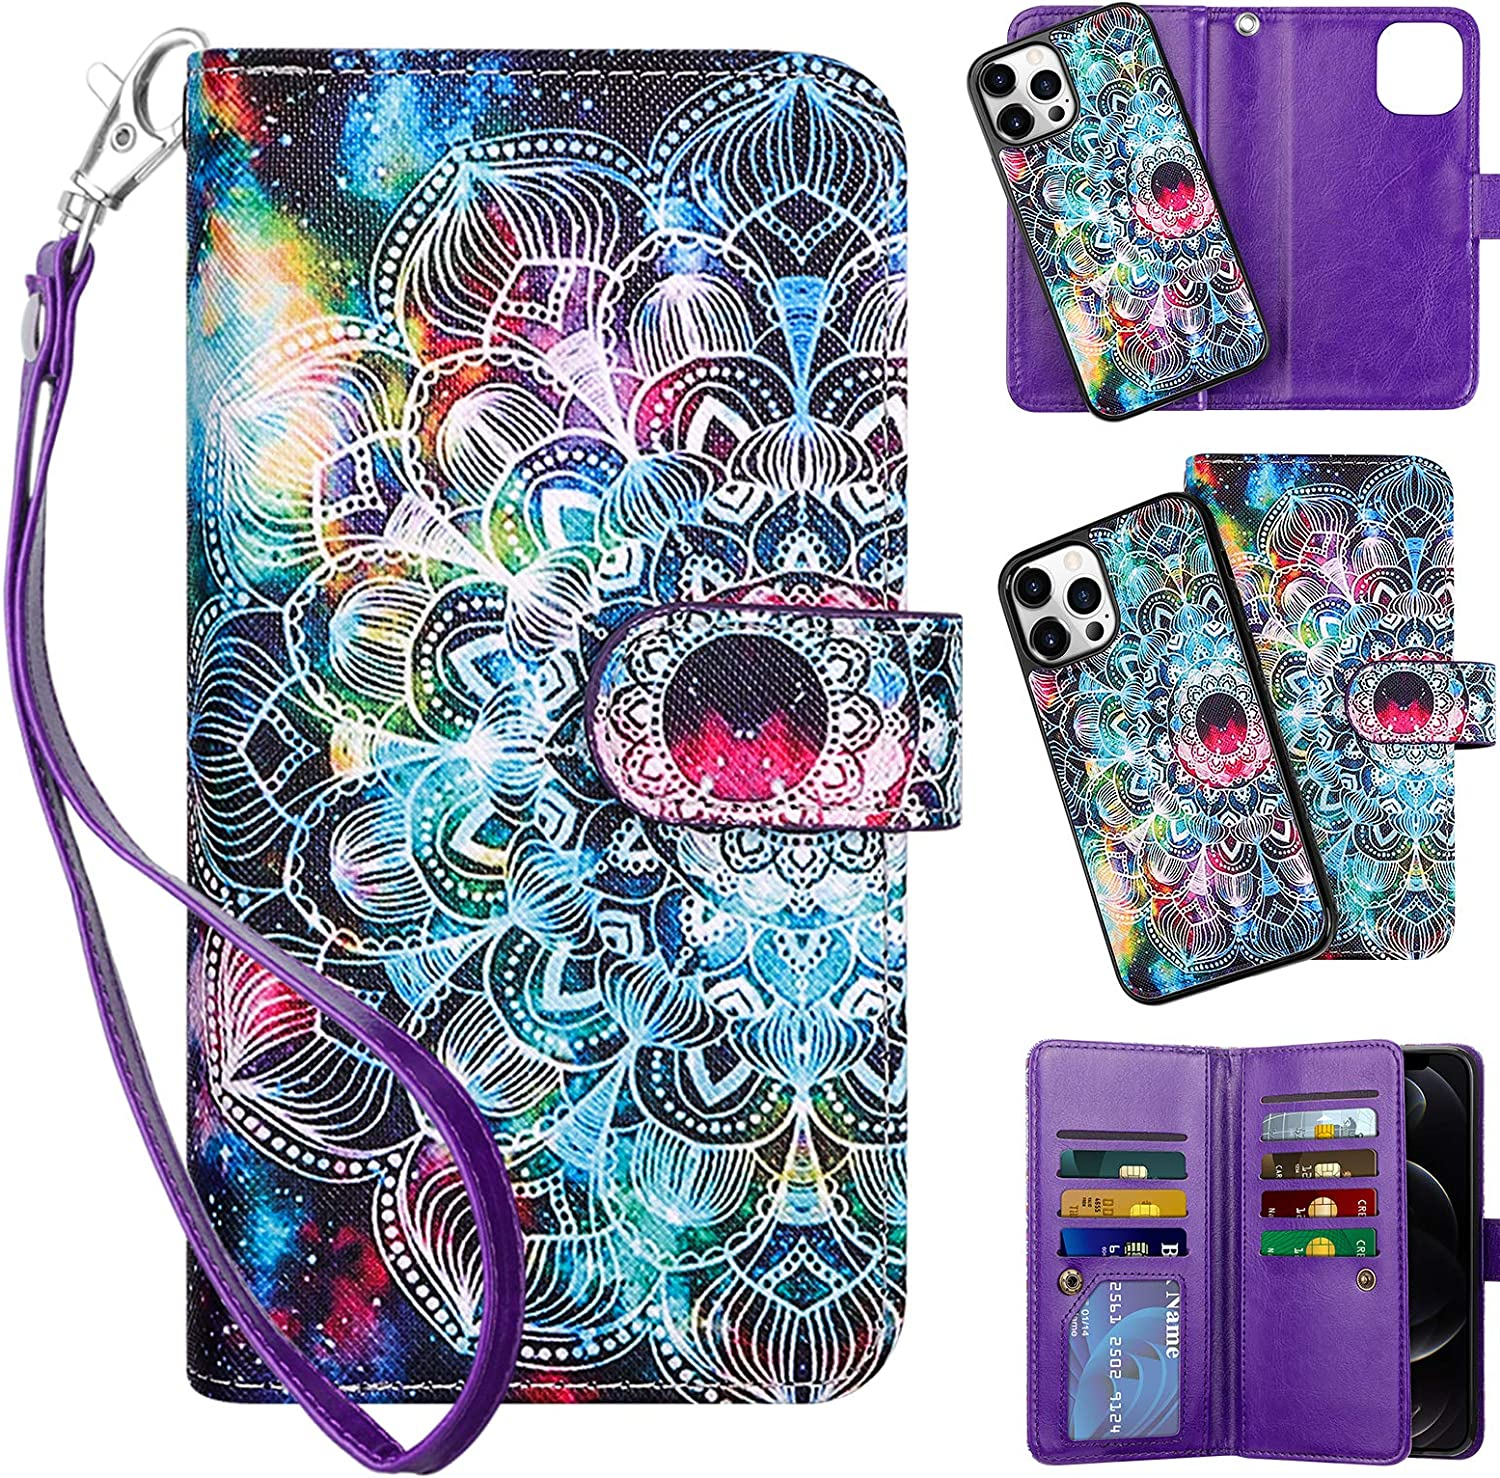 Vofolen Compatible with iPhone 12 Pro Max Case 5G Wallet Cover 2-in-1 Credit Card Holder Slot Detachable Protective Slim Hard Shell Magnetic Leather Folio Pocket Flip Case Mandala Purple